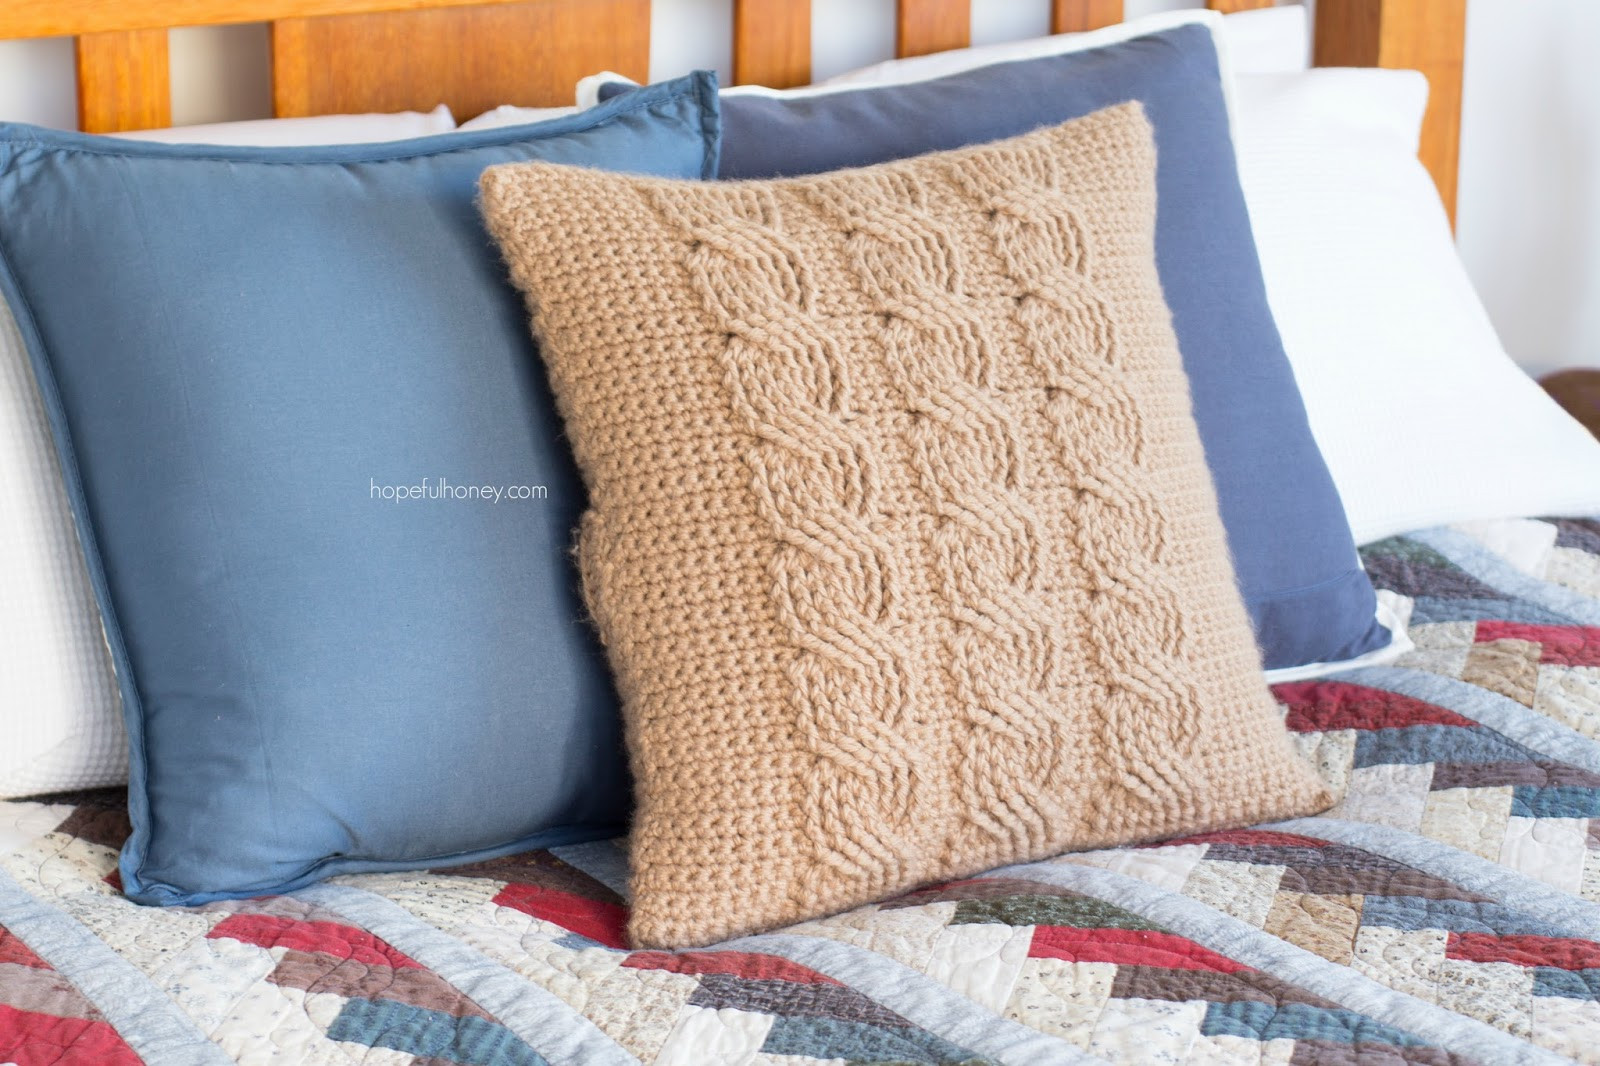 Crochet Pillow Cover Pattern Best Of Free Crochet Patterns Pillow Covers Dancox for Of Lovely 47 Images Crochet Pillow Cover Pattern